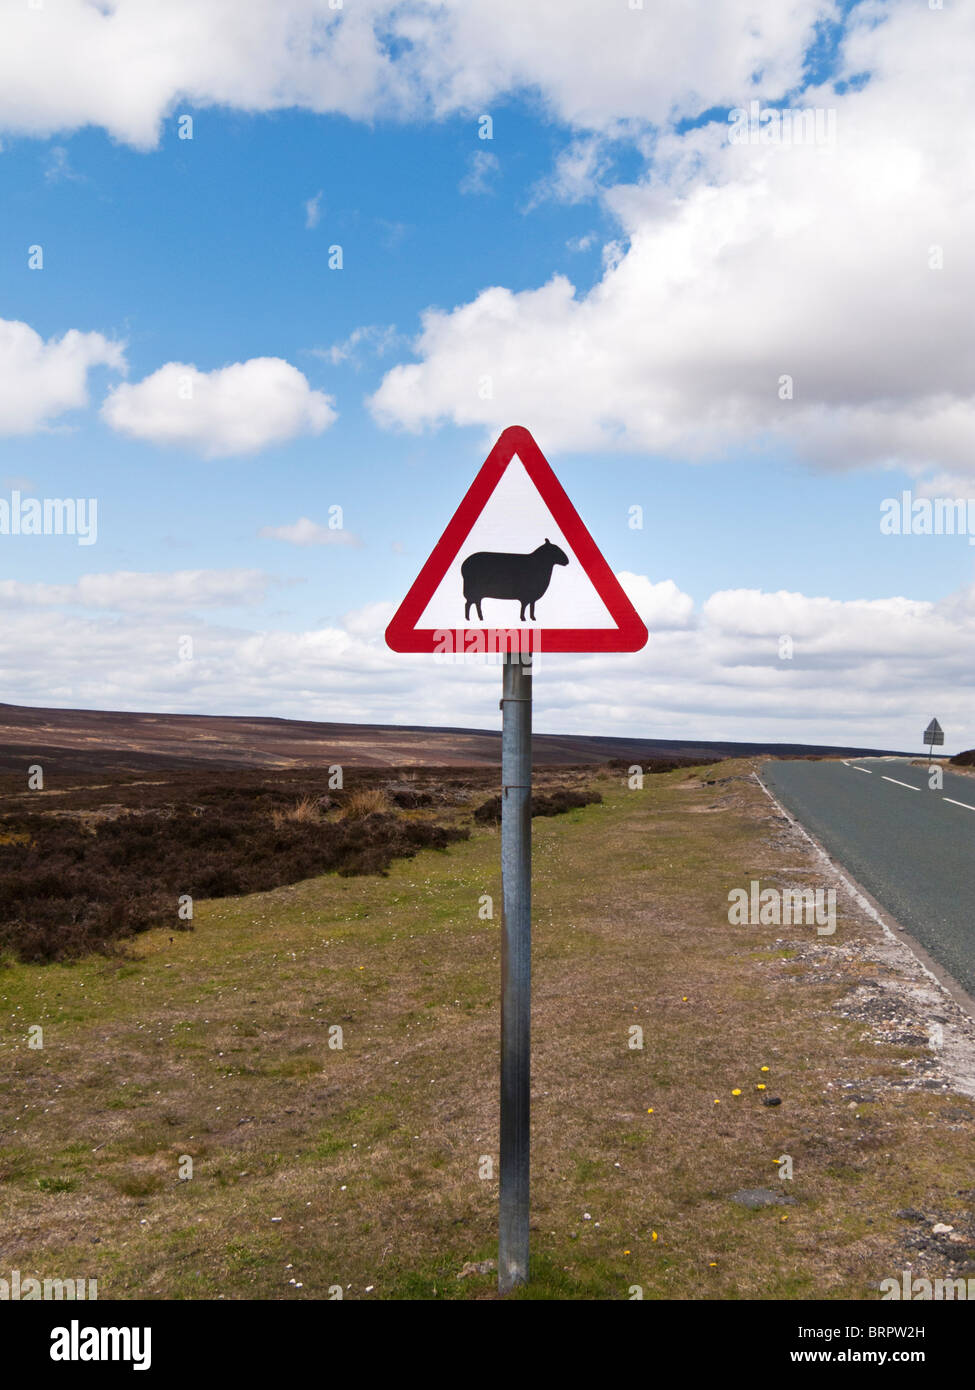 Road sign warning of sheep on the road ahead England UK - Stock Image